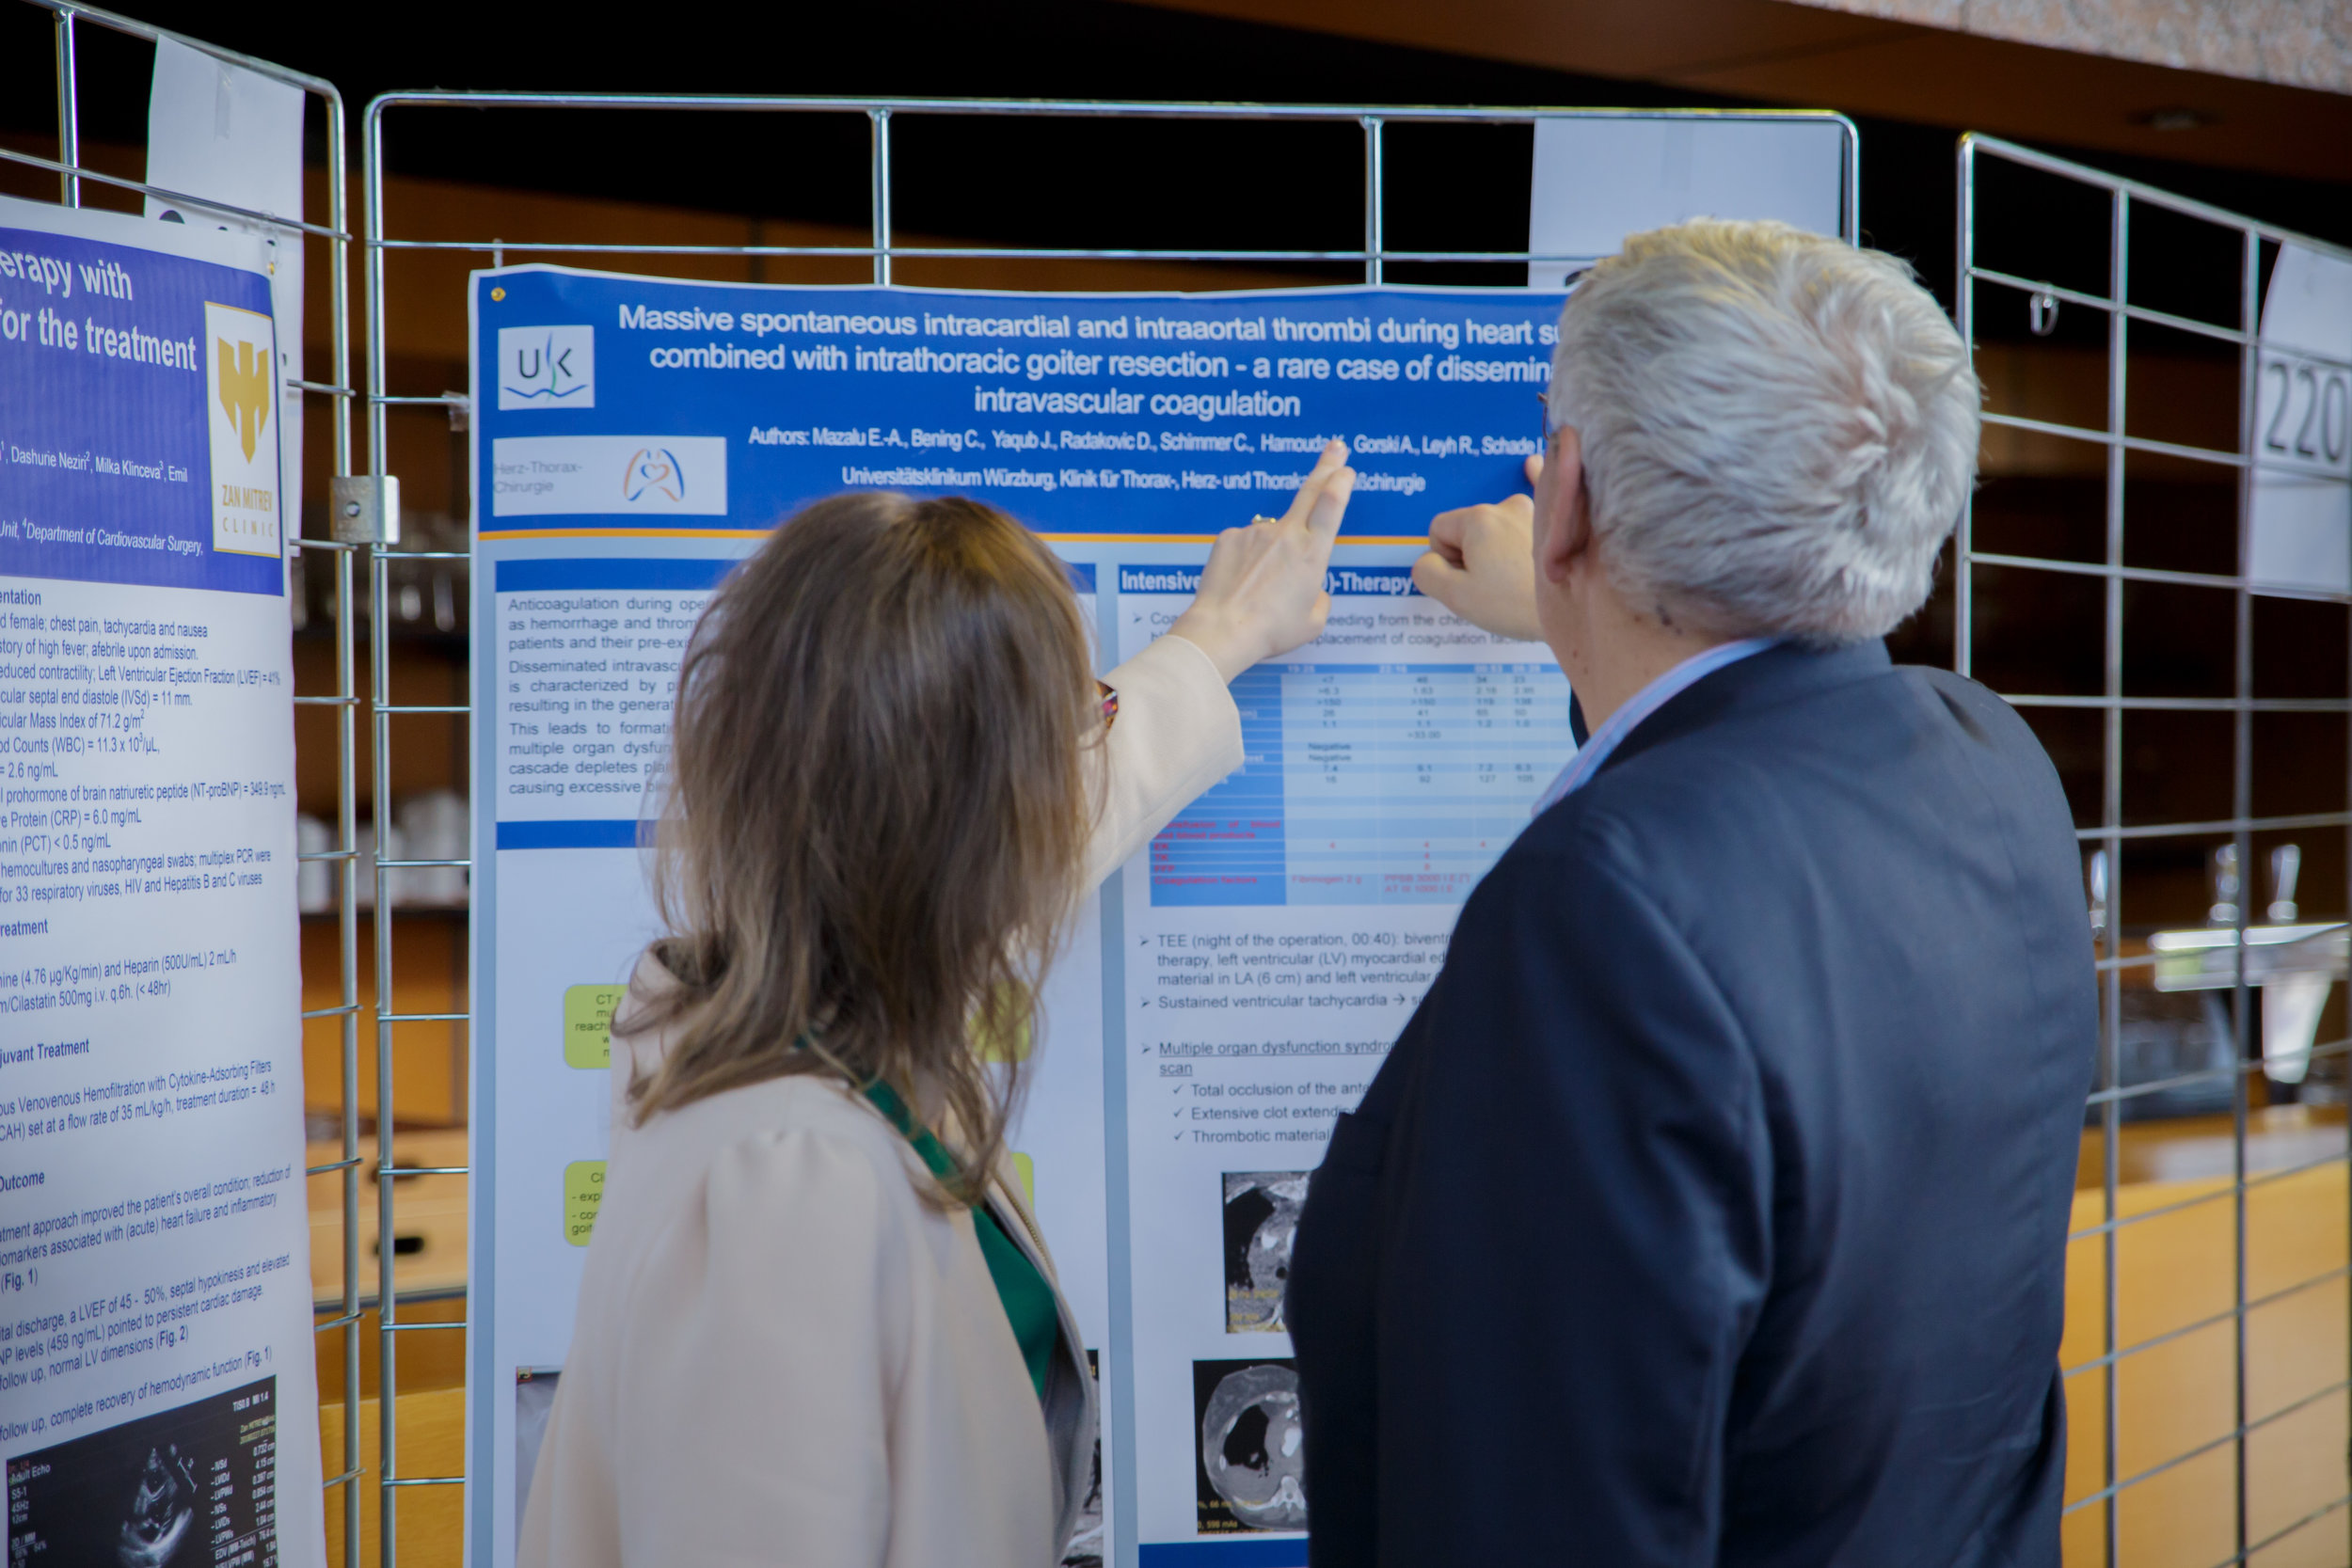 Poster Abstract at the 2018 ESCVS Conference being held in Strasbourg